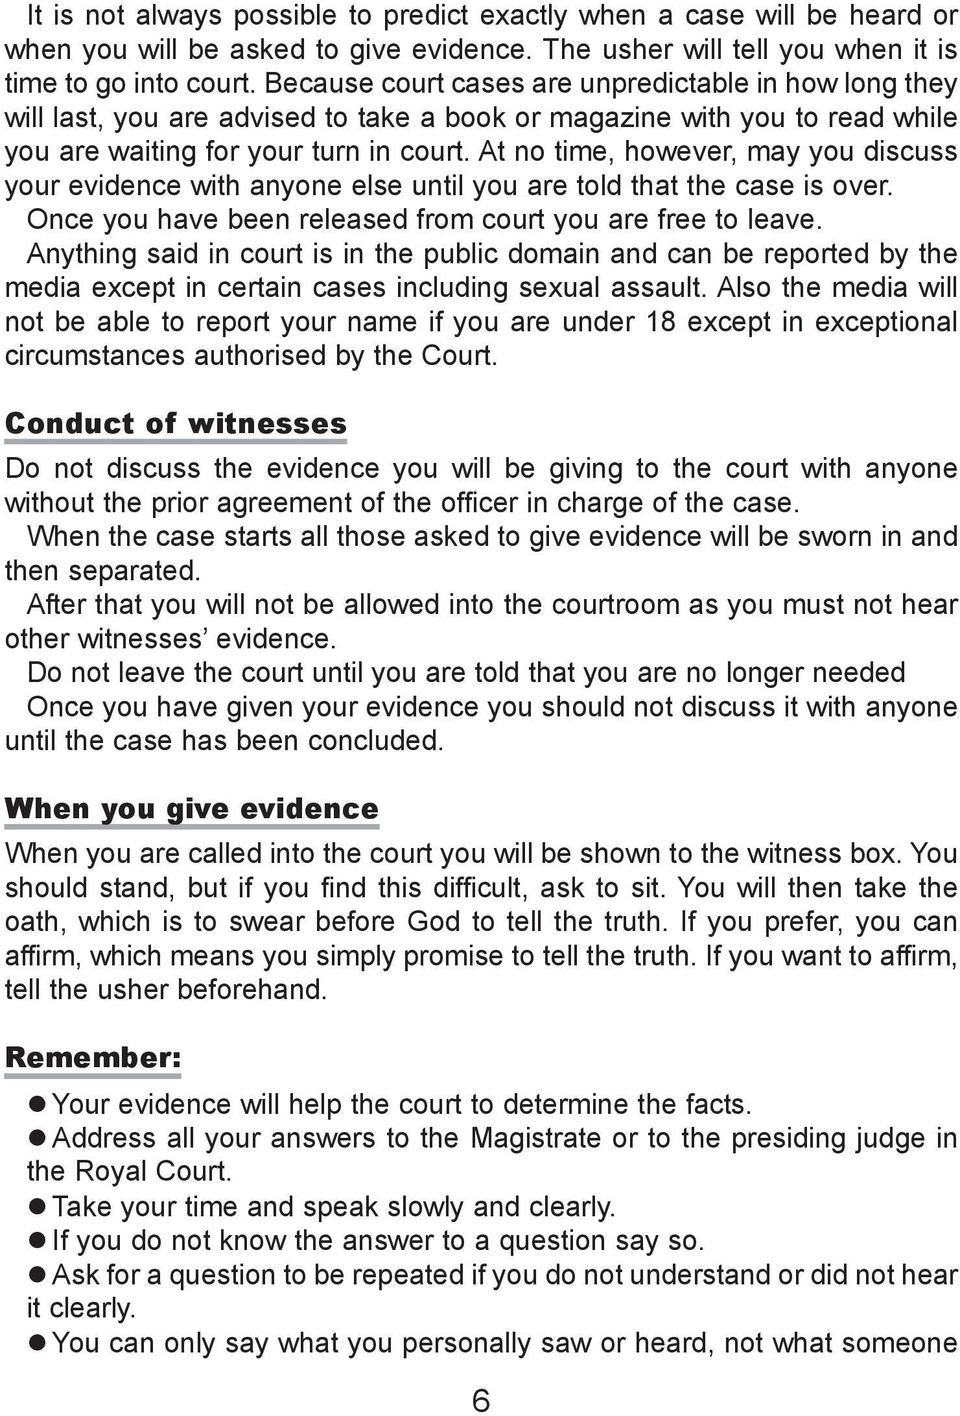 At no time, however, may you discuss your evidence with anyone else until you are told that the case is over. Once you have been released from court you are free to leave.